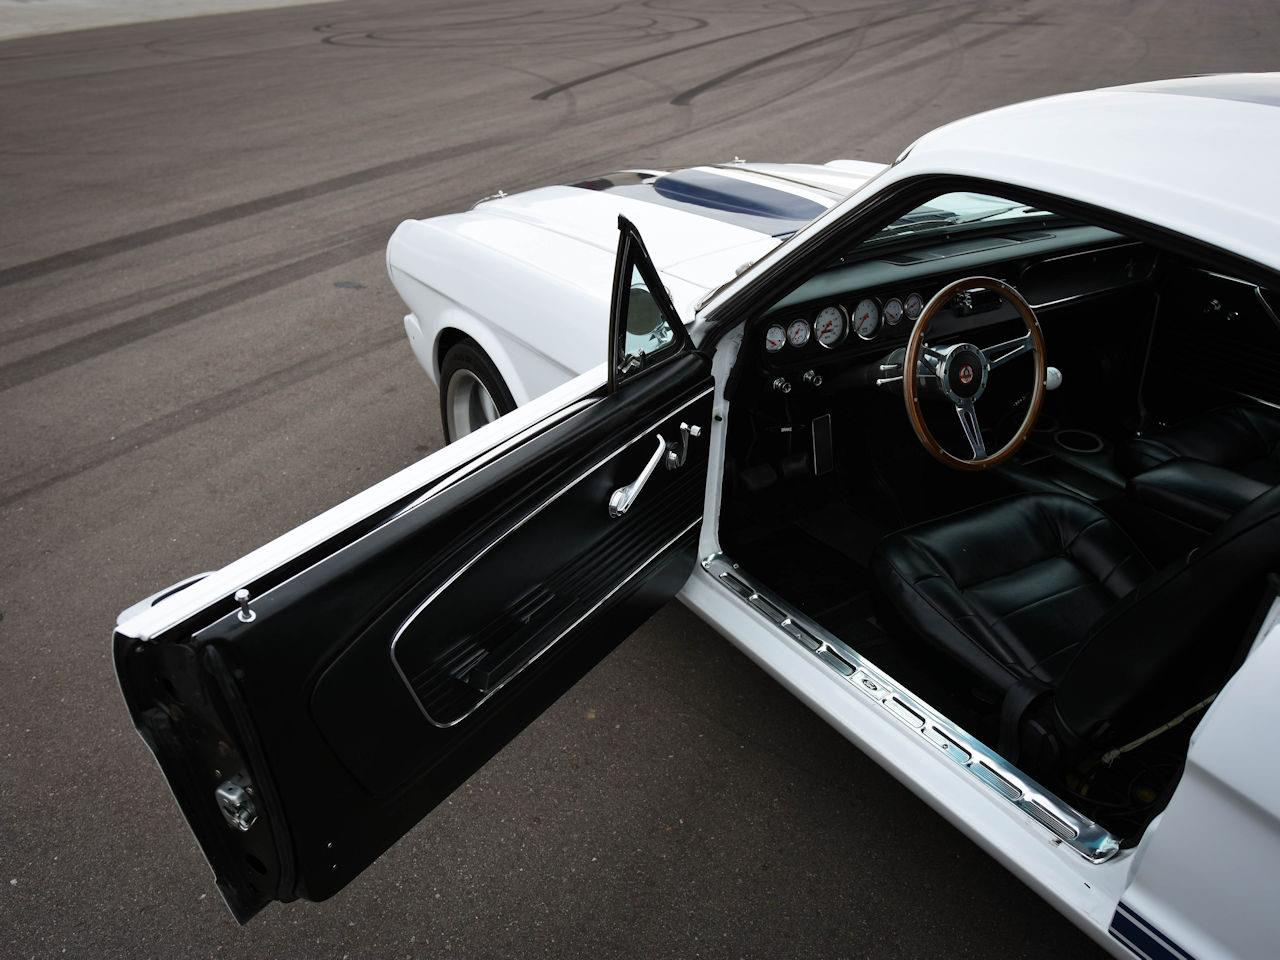 Large Picture of Classic '65 Ford Mustang located in Illinois Offered by Gateway Classic Cars - Denver - MOAC